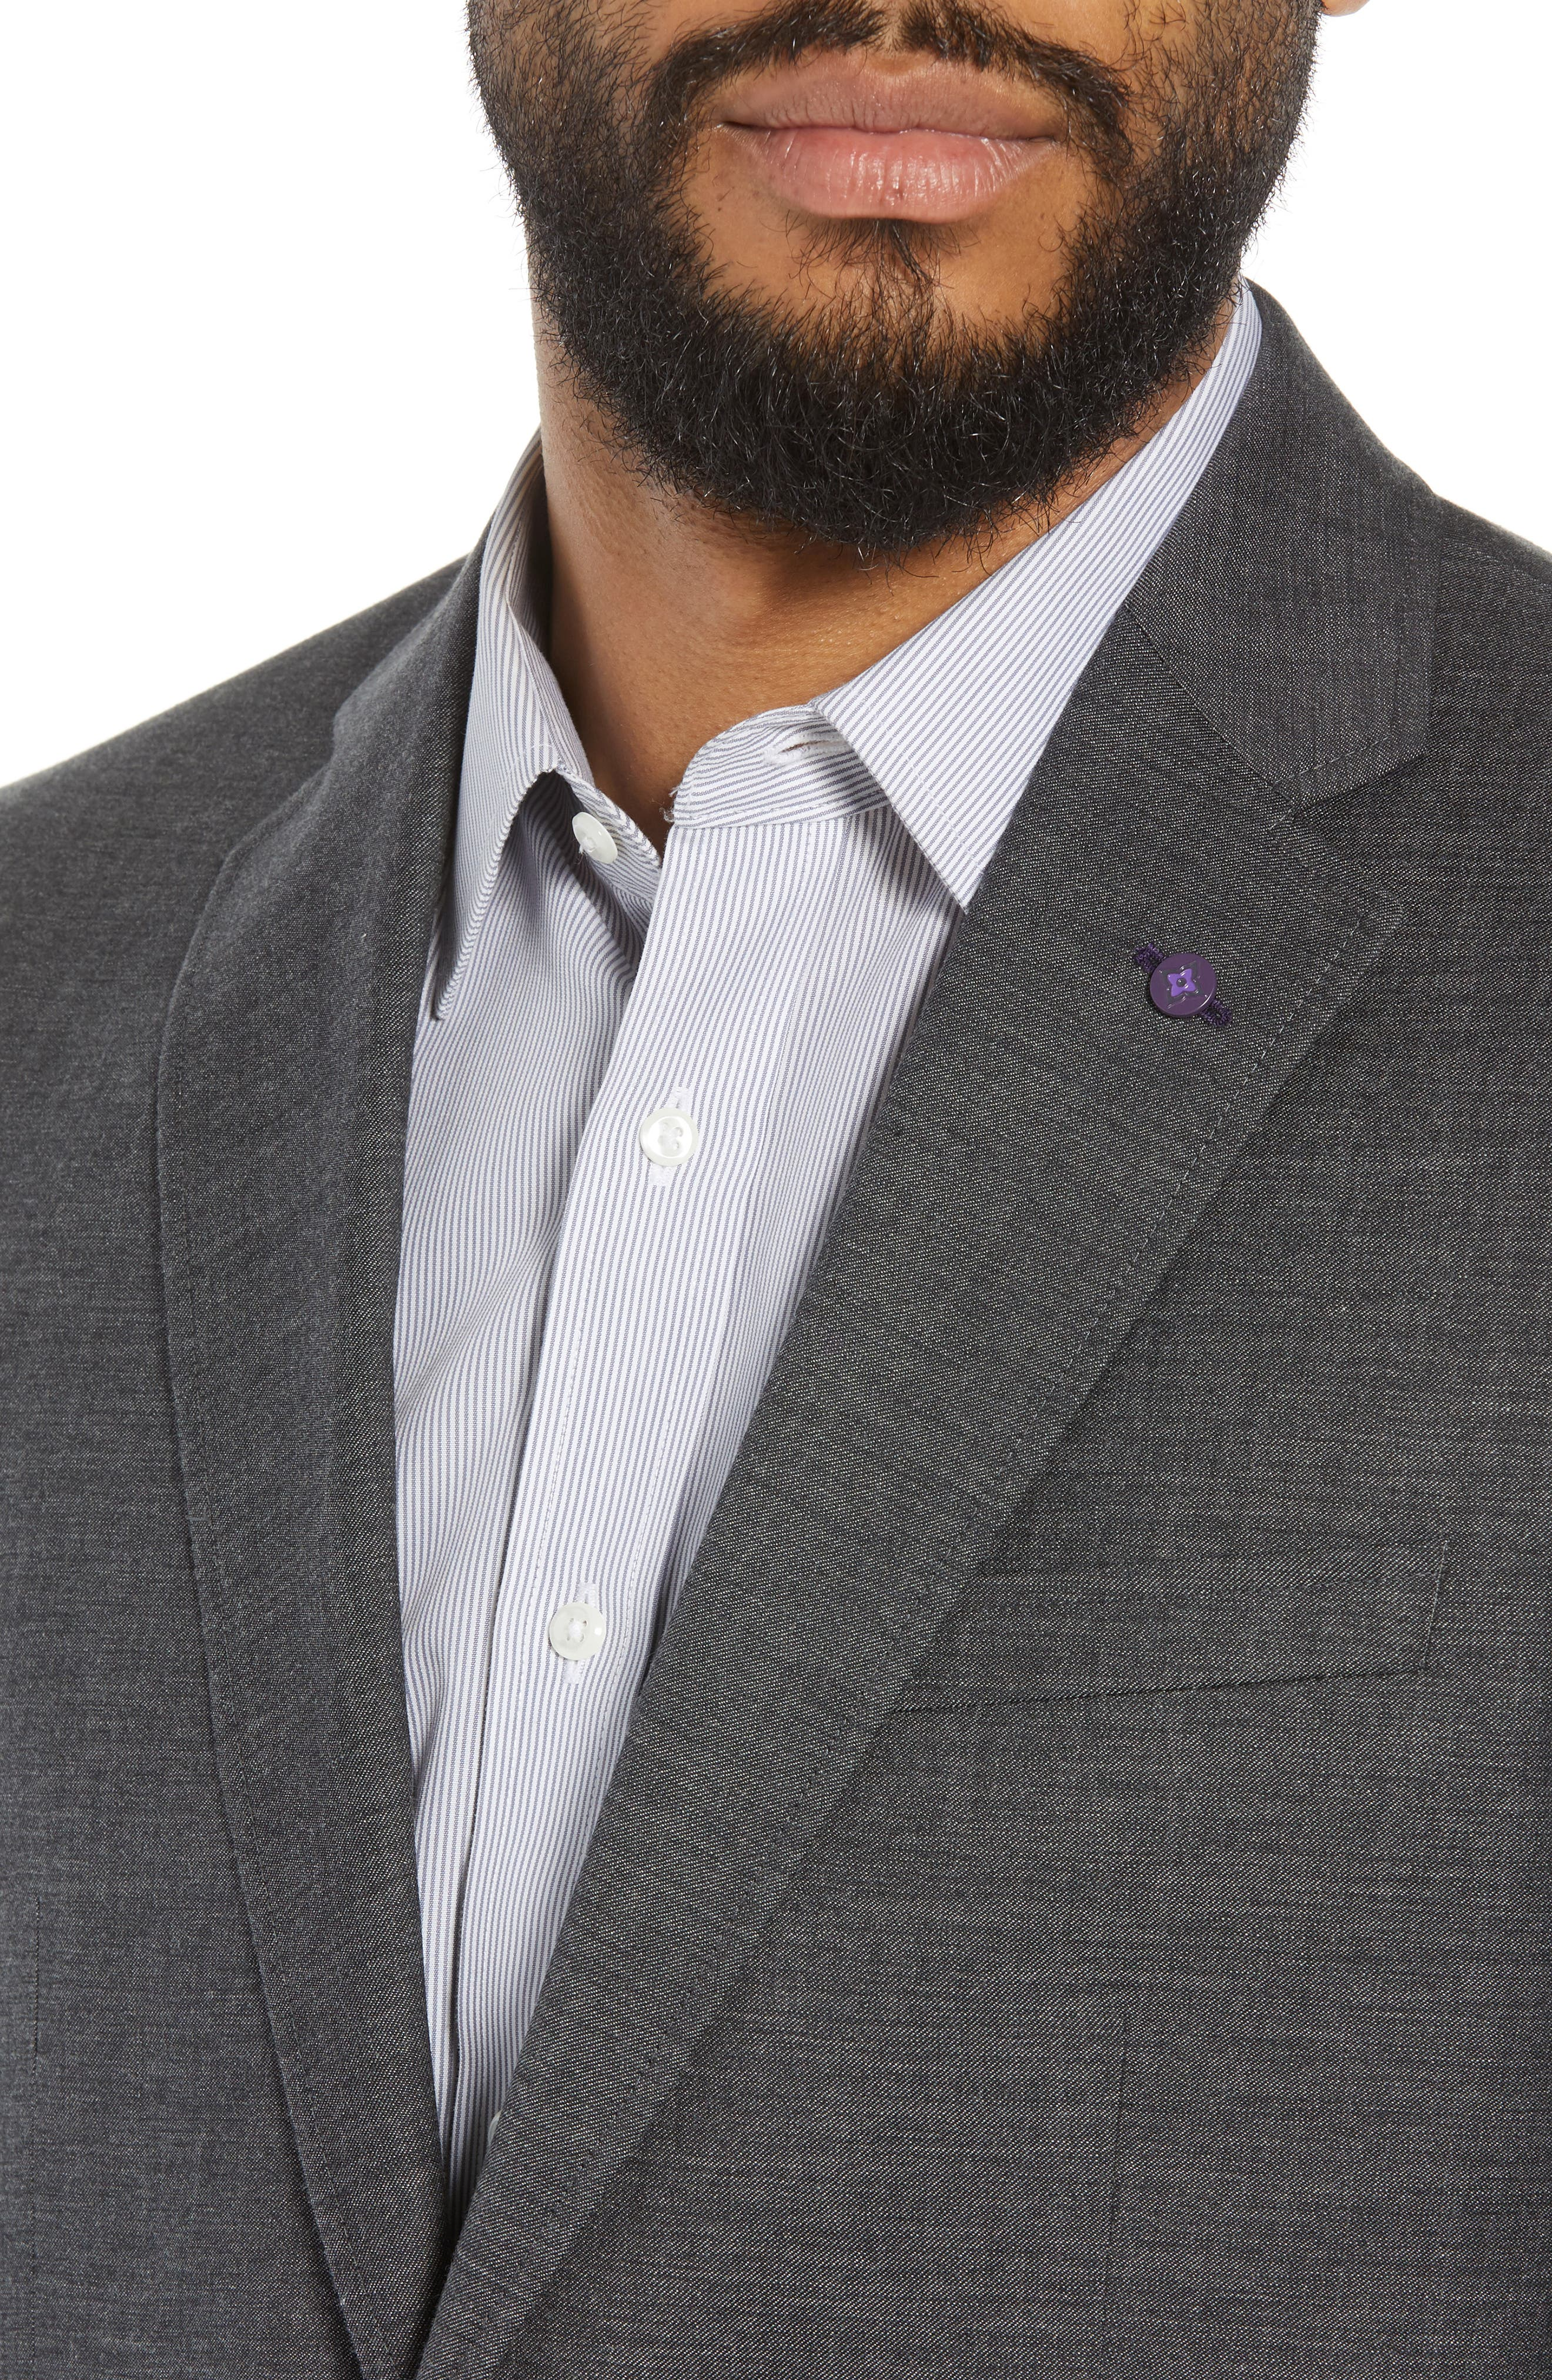 Jay Trim Fit Heathered Wool & Cotton Sport Coat,                             Alternate thumbnail 4, color,                             Grey